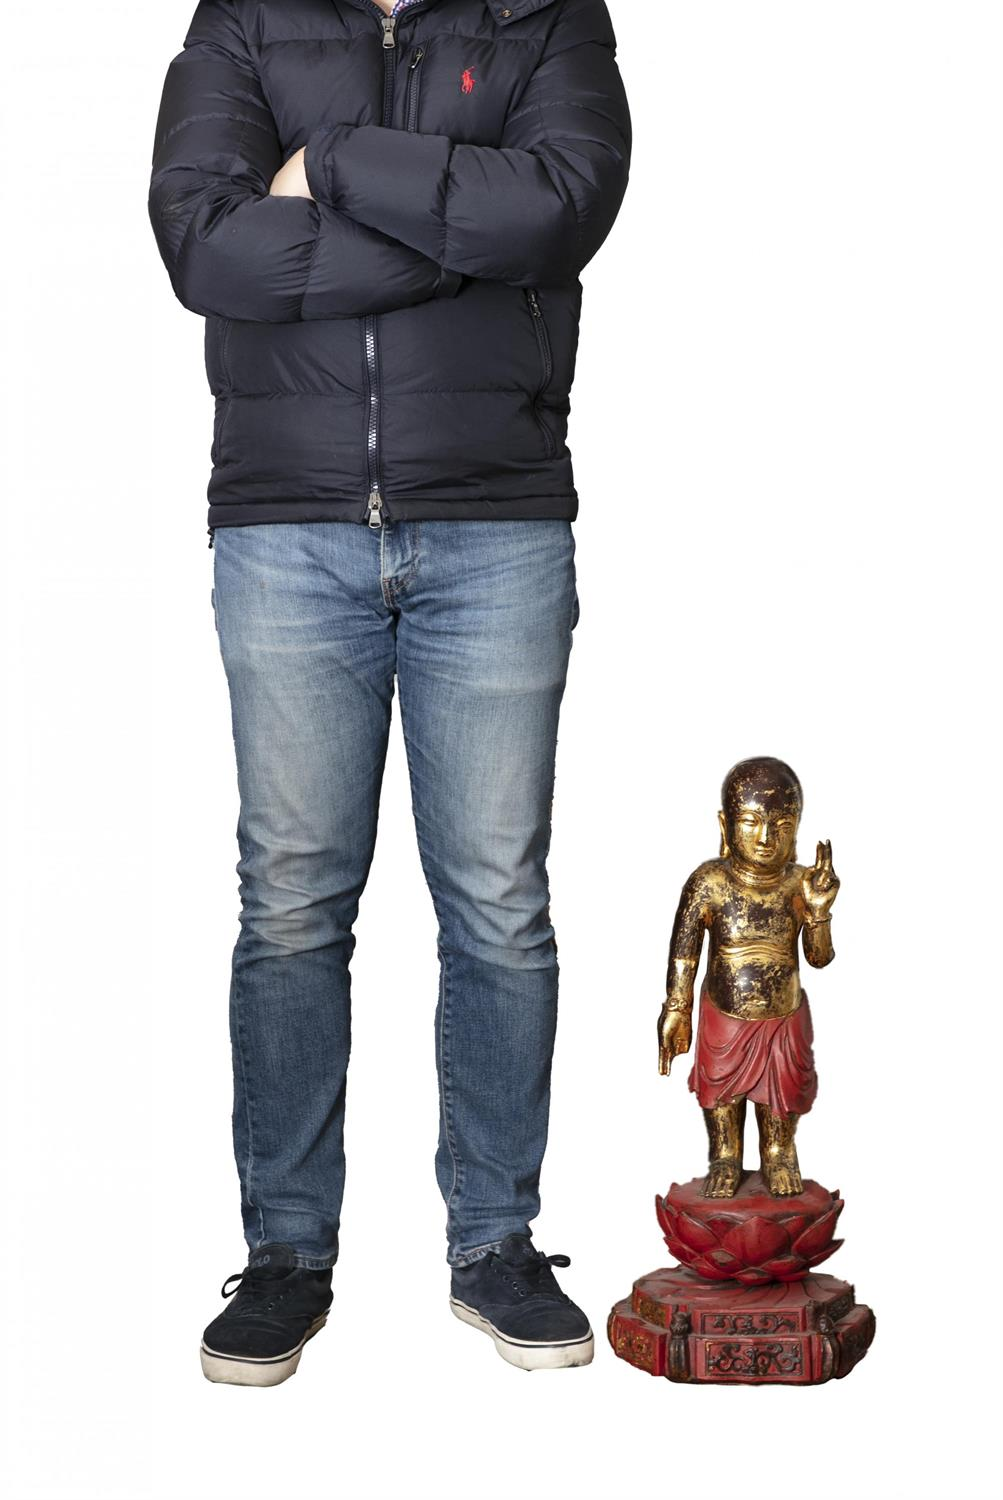 A LARGE GILT-LACQUERED WOODEN SCULPTURE OF THE STANDING INFANT BUDDHA China, Qing Dynasty (or - Image 20 of 20